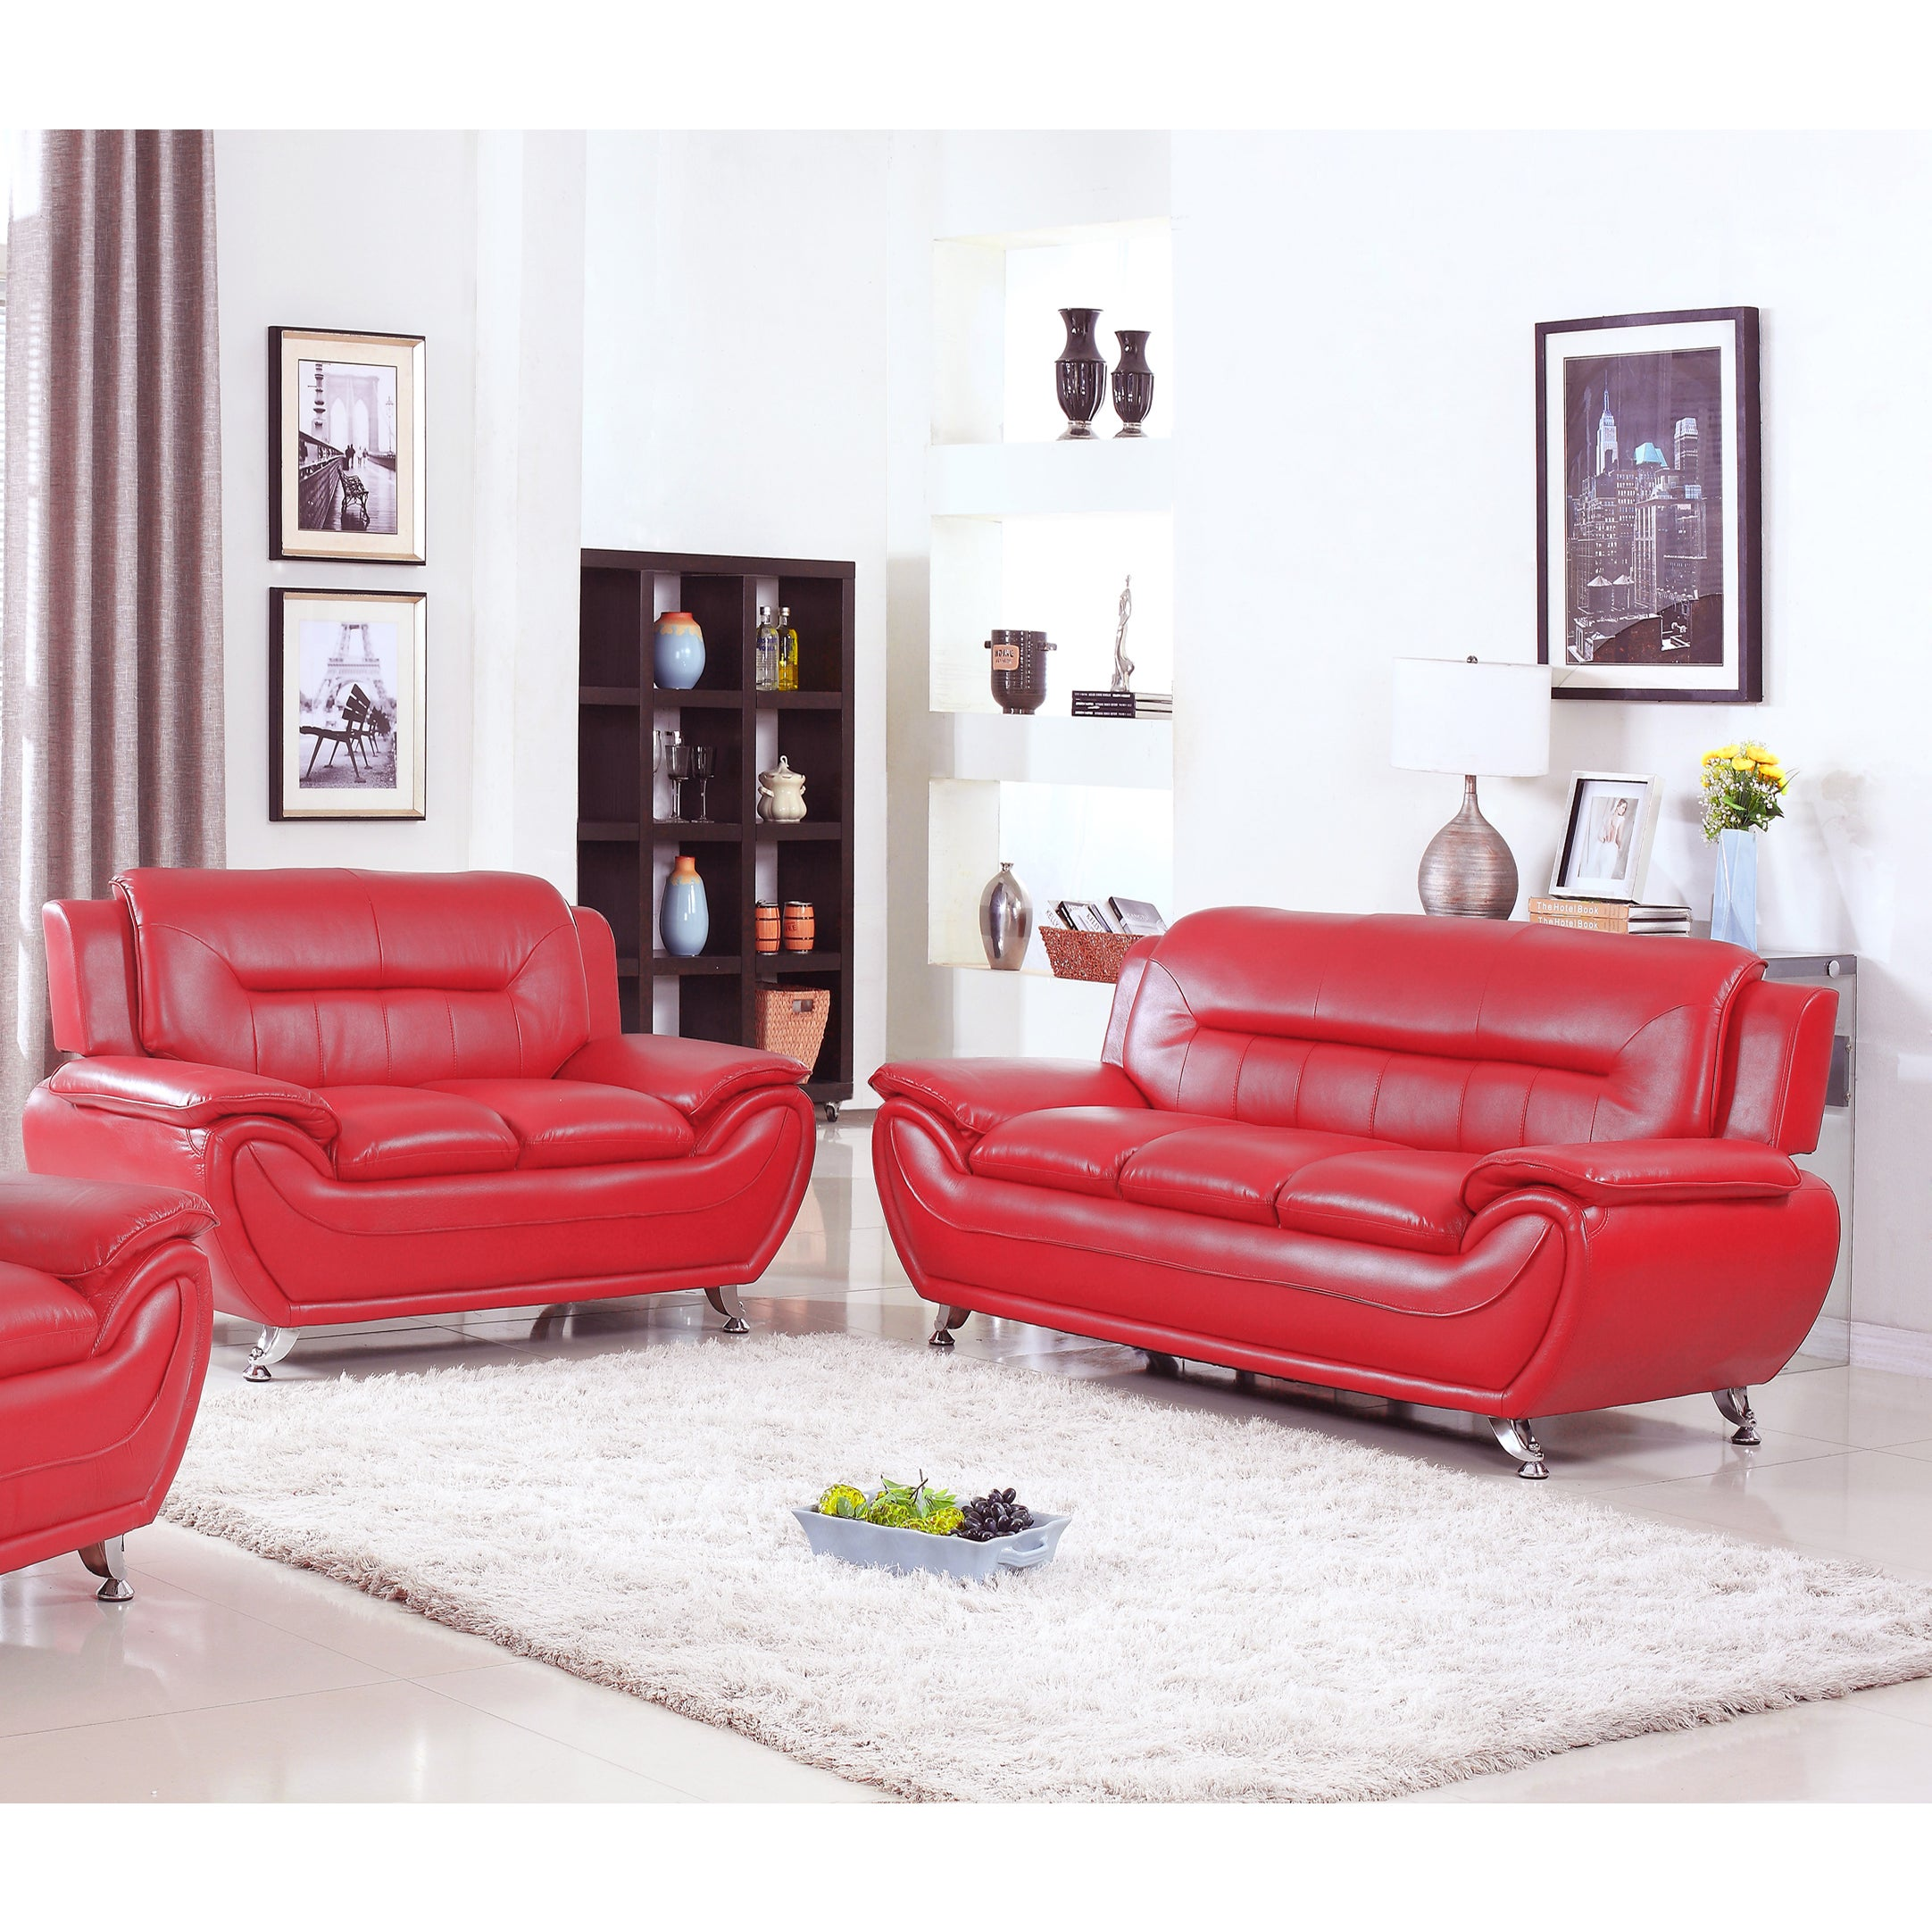 Deliah Relaxing Contemporary Modern Style 2pc Sofa And Loveseat Set 3 Colors